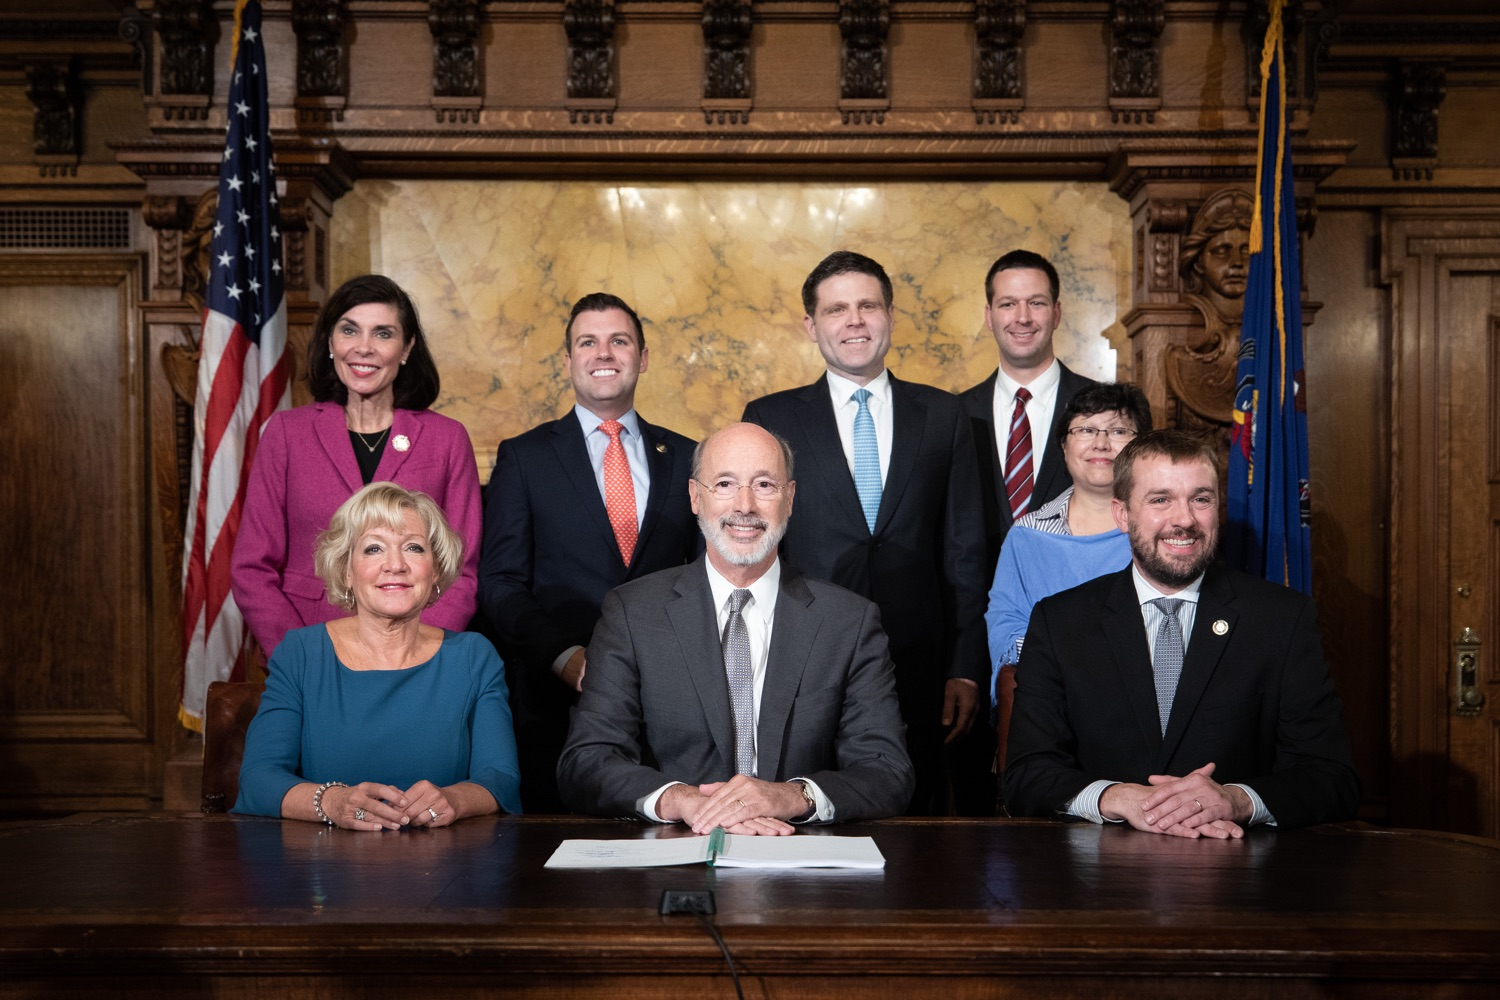 "<a href=""http://filesource.abacast.com/commonwealthofpa/photo/17554_gov_voter_reform_bill_dz_021.jpg"" target=""_blank"">⇣ Download Photo<br></a>Harrisburg, PA  Governor Tom Wolf posing with attendees after the bill signing. Governor Wolf made voting more convenient and secure by signing Act 77 of 2019, the most significant improvement to Pennsylvanias elections in more than 80 years. The bipartisan compromise legislation takes effect for the April 2020 primary election and makes Pennsylvania a national leader with voter-friendly election reforms."